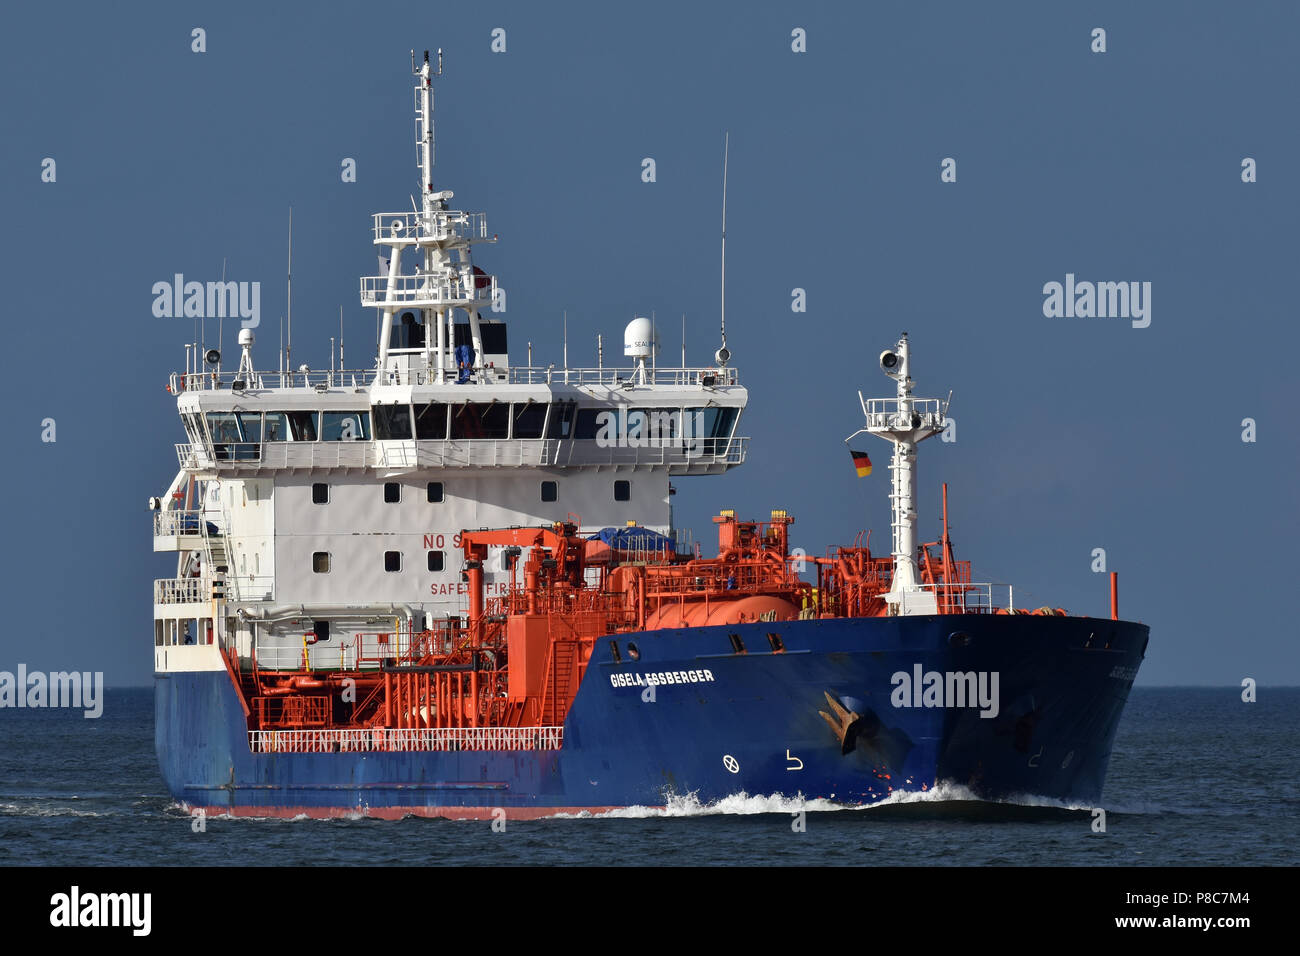 recently renamed tanker Gisela Essberger Stock Photo